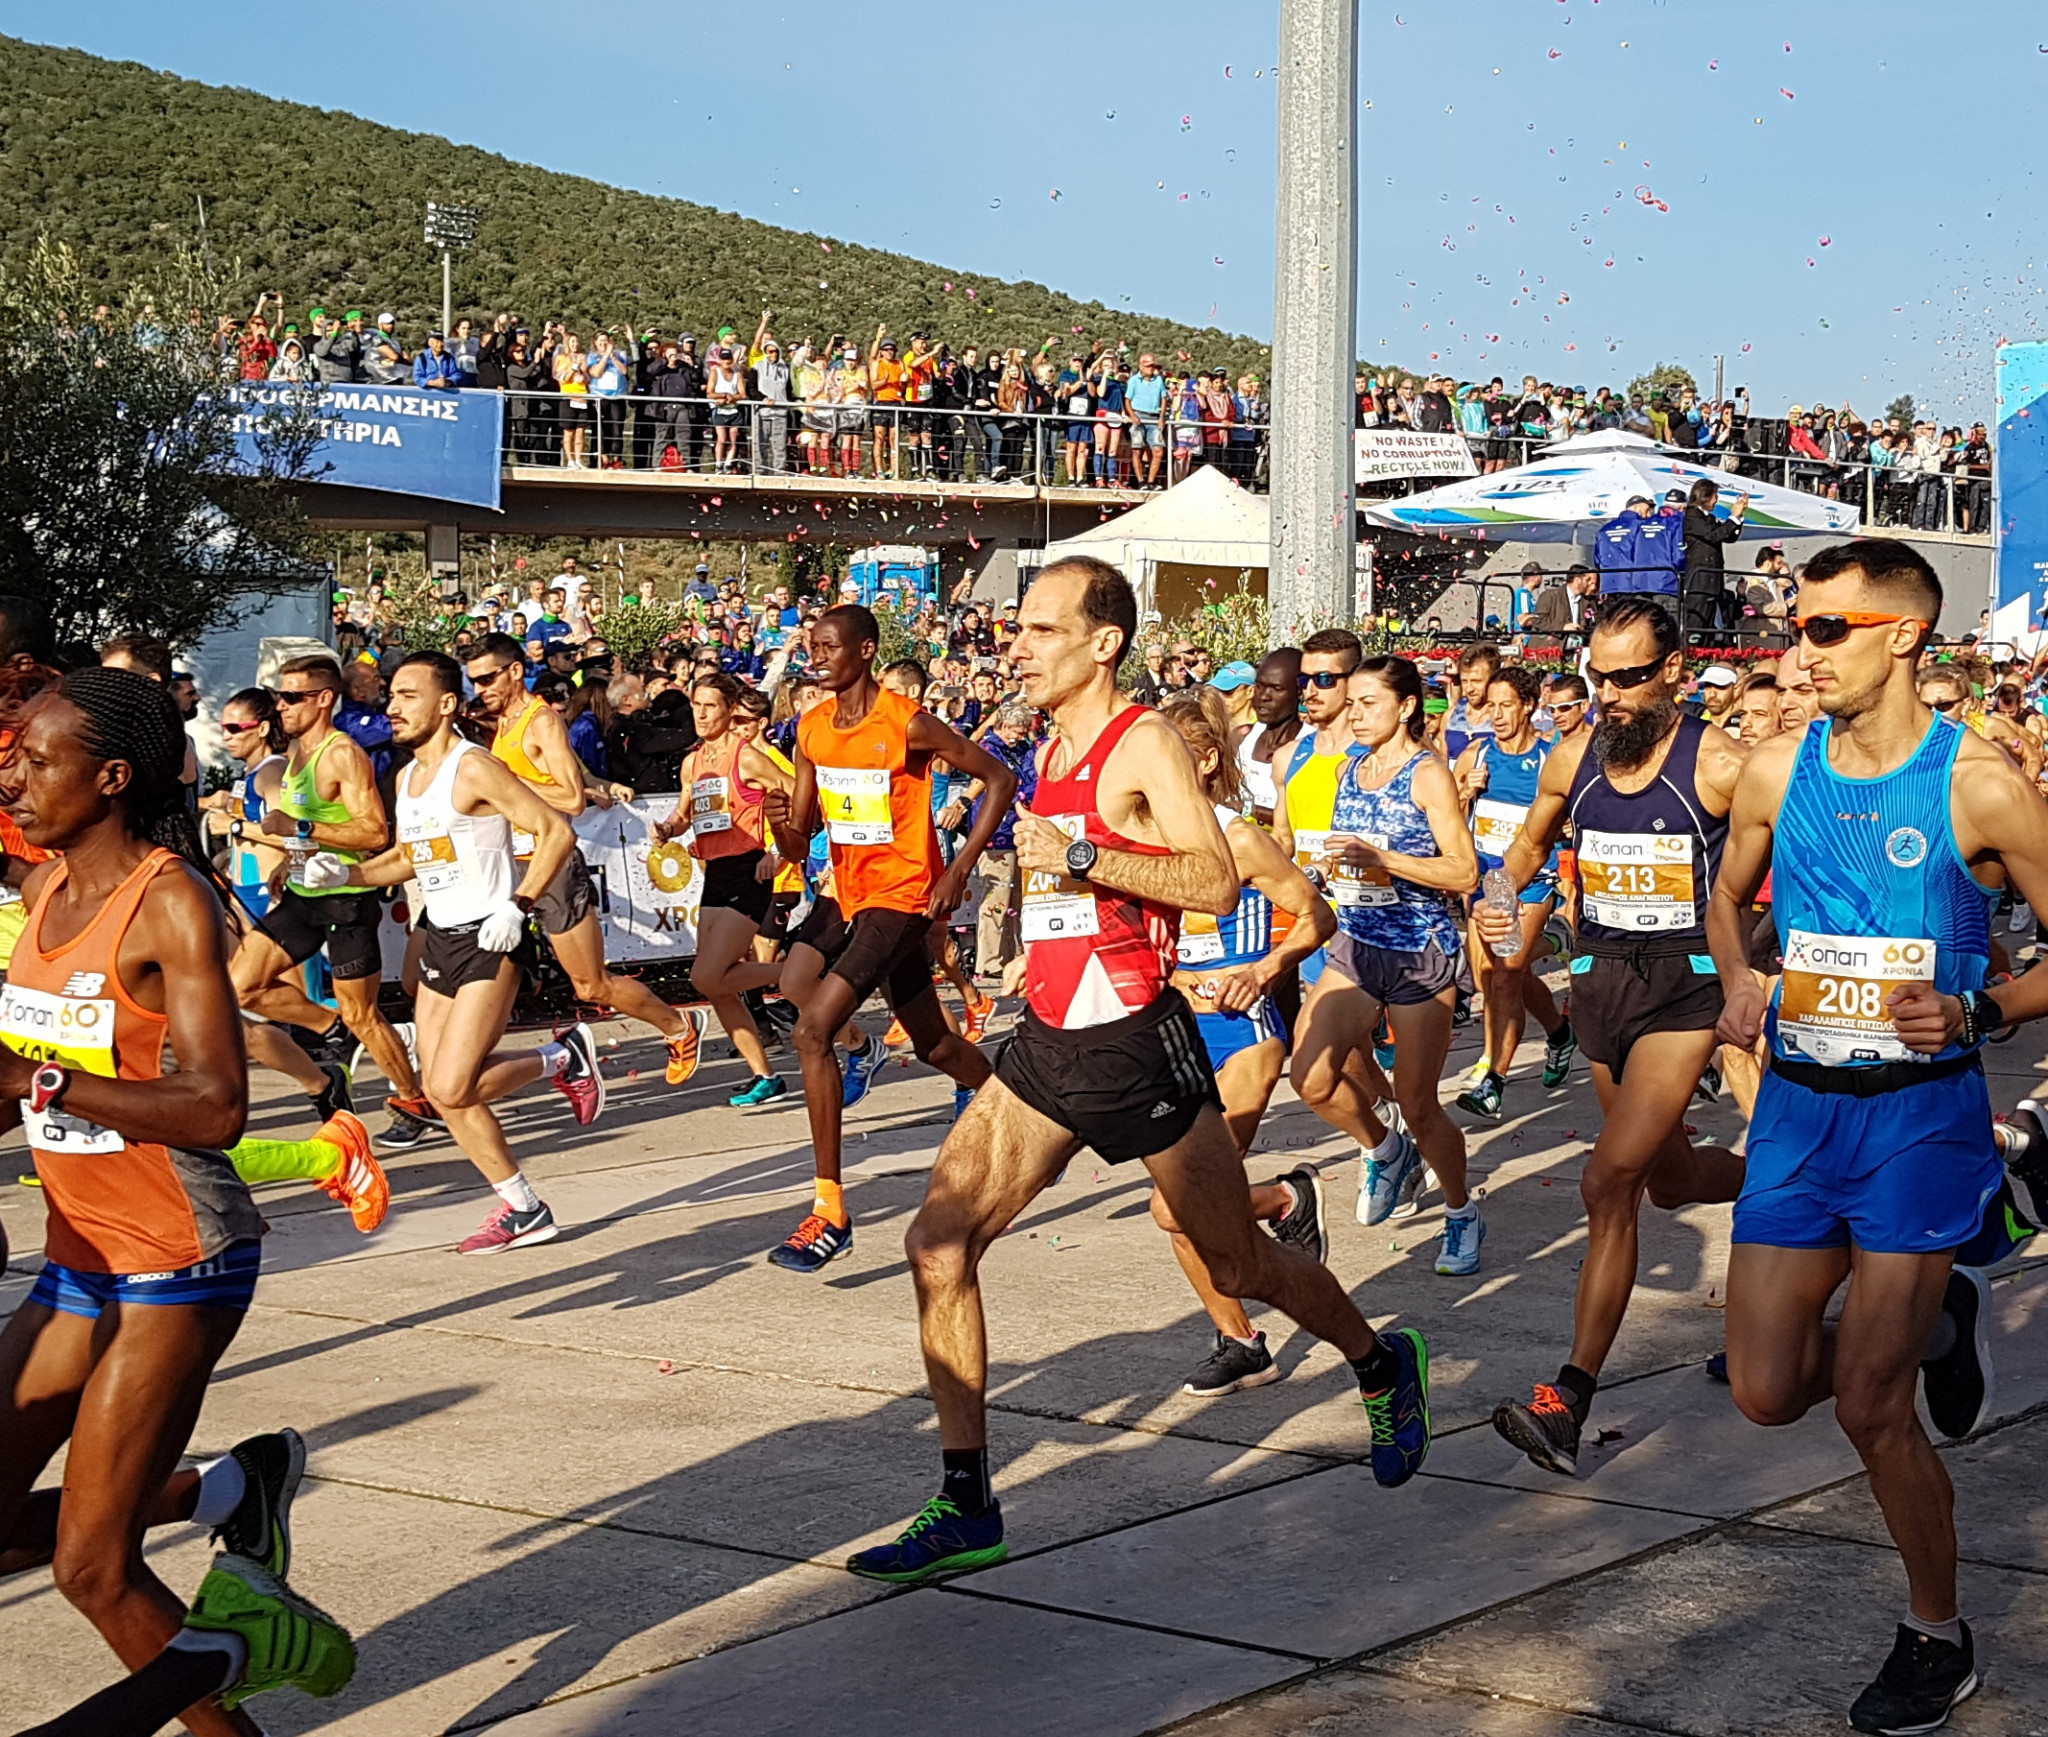 Runners depart Marathon en route for Athens in Sunday's race ©ITG